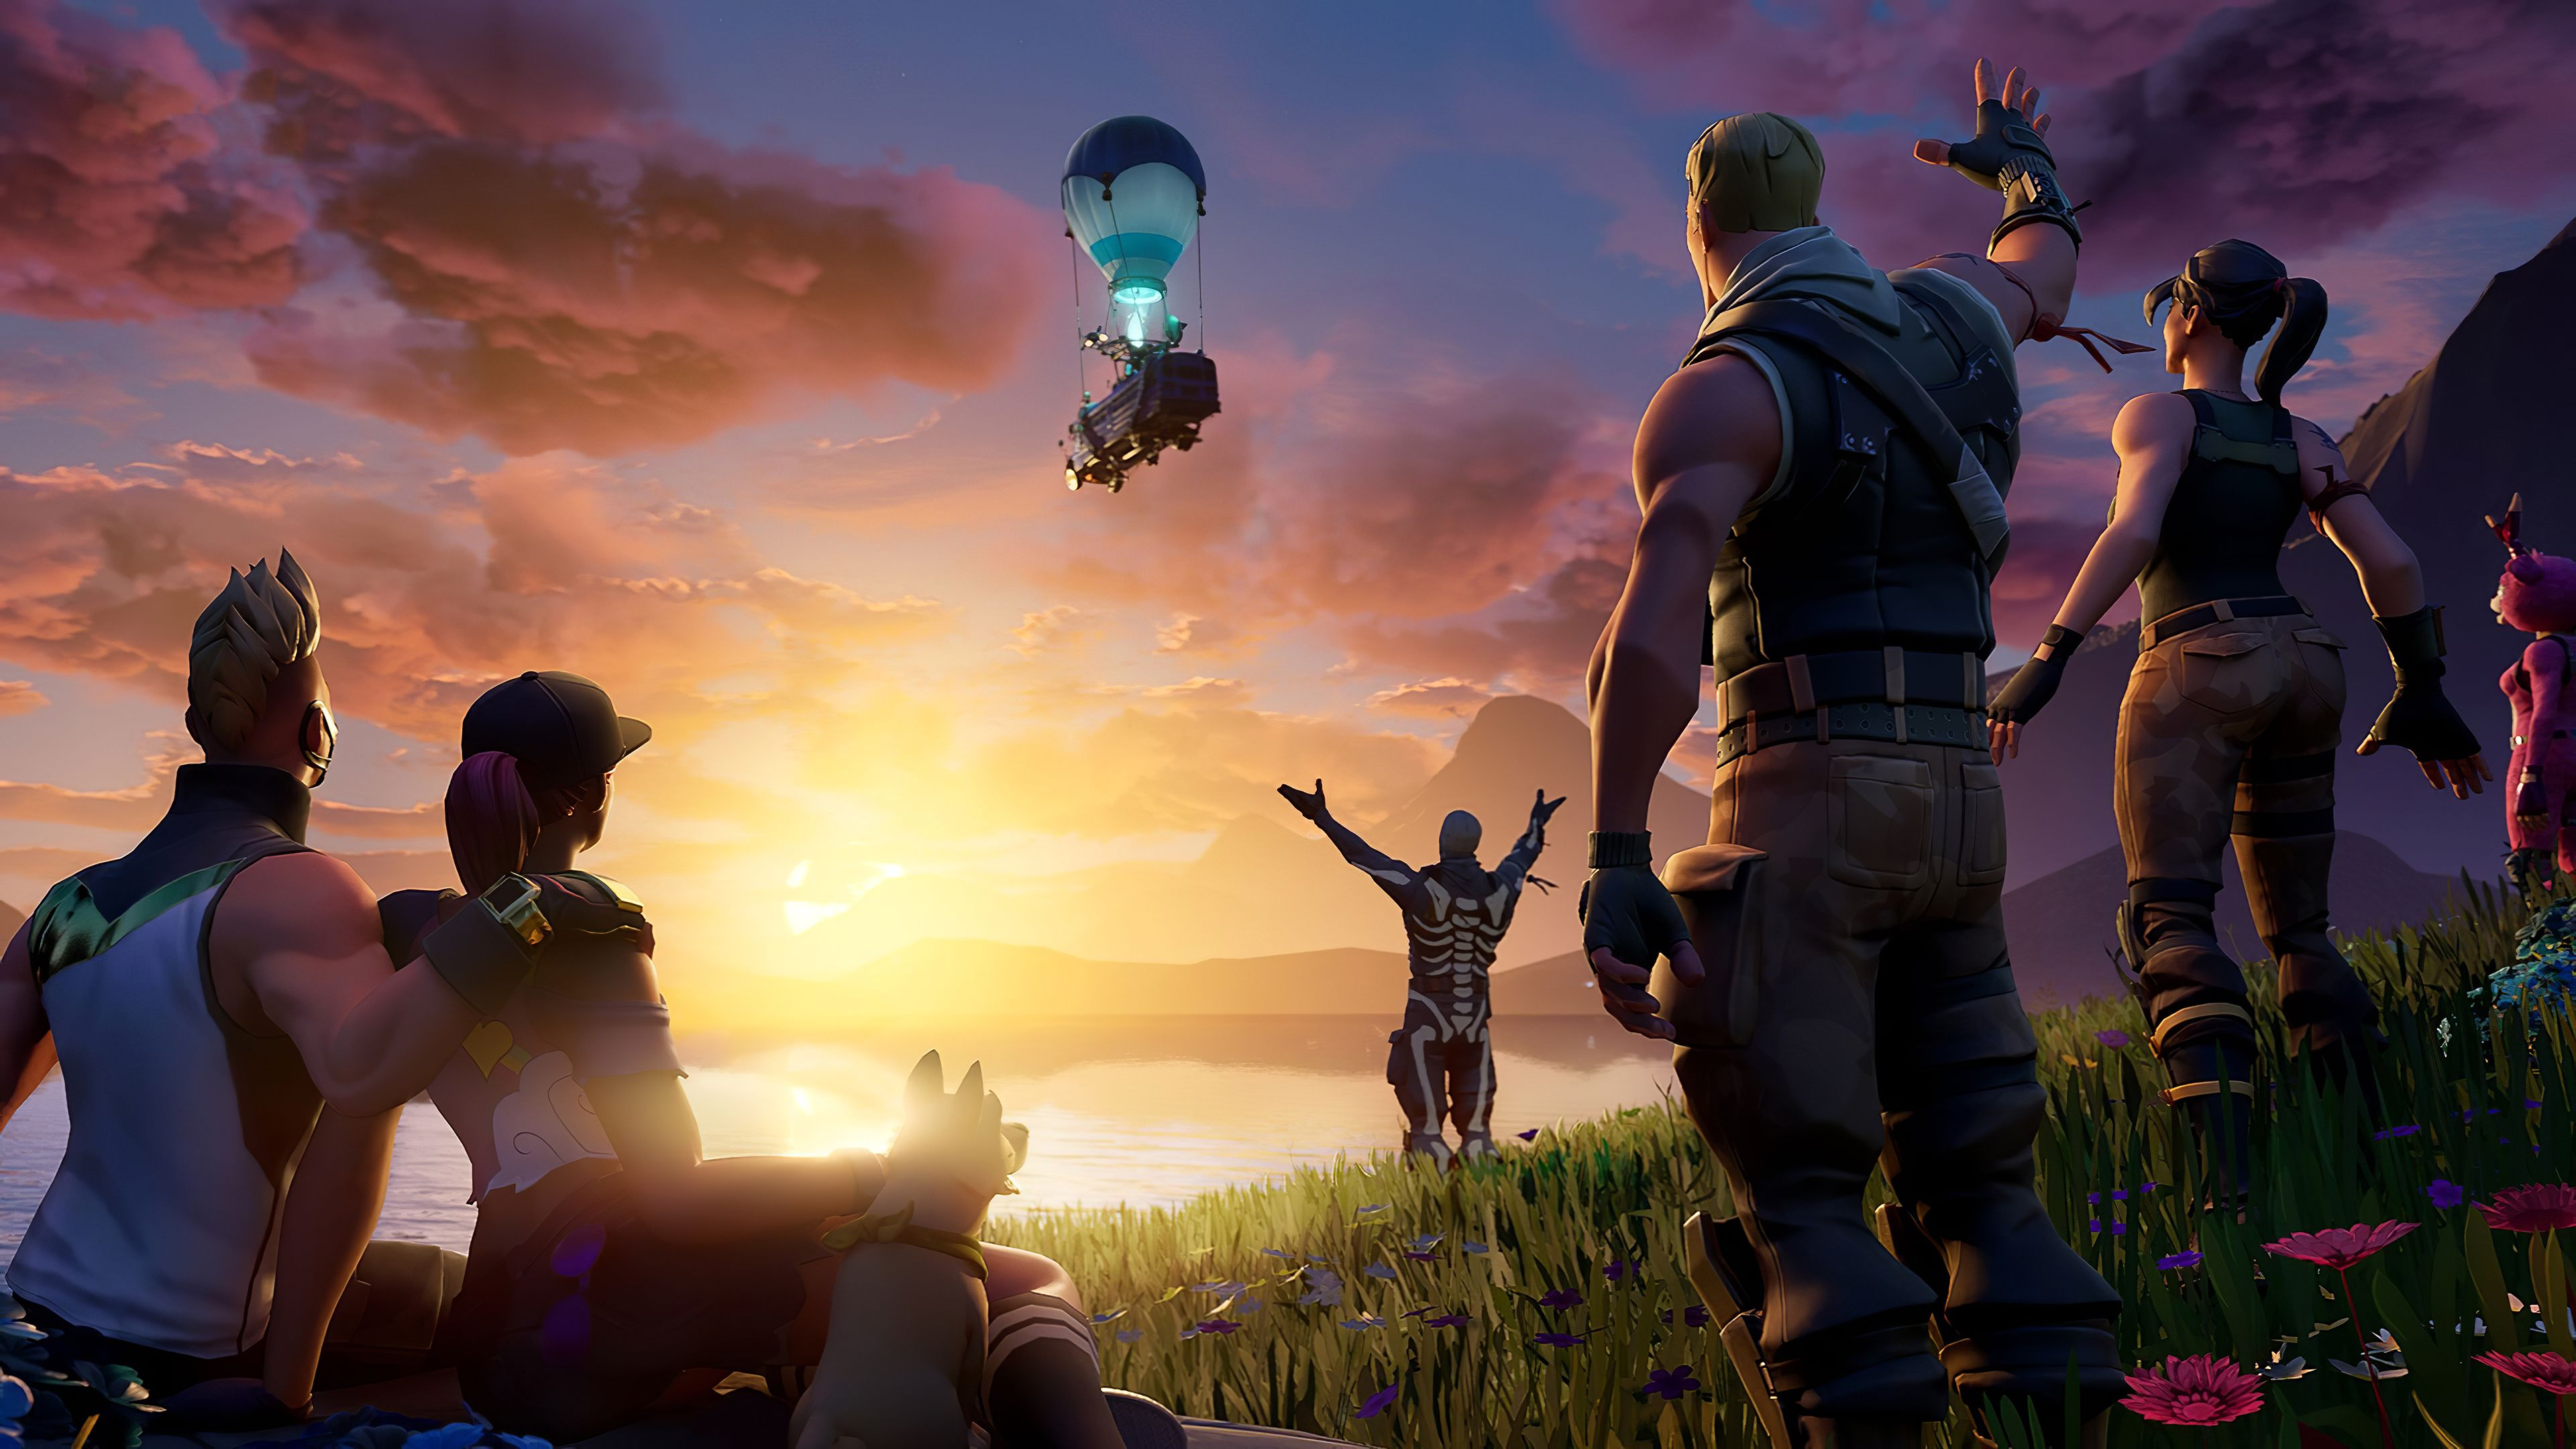 Fortnite Chapter 2 Hd Wallpapers Games Wallpapers Fortnite Wallpapers Fortnite Chapter 2 Wallpapers 4k Wall Fortnite Season 11 Epic Games Fortnite Fortnite